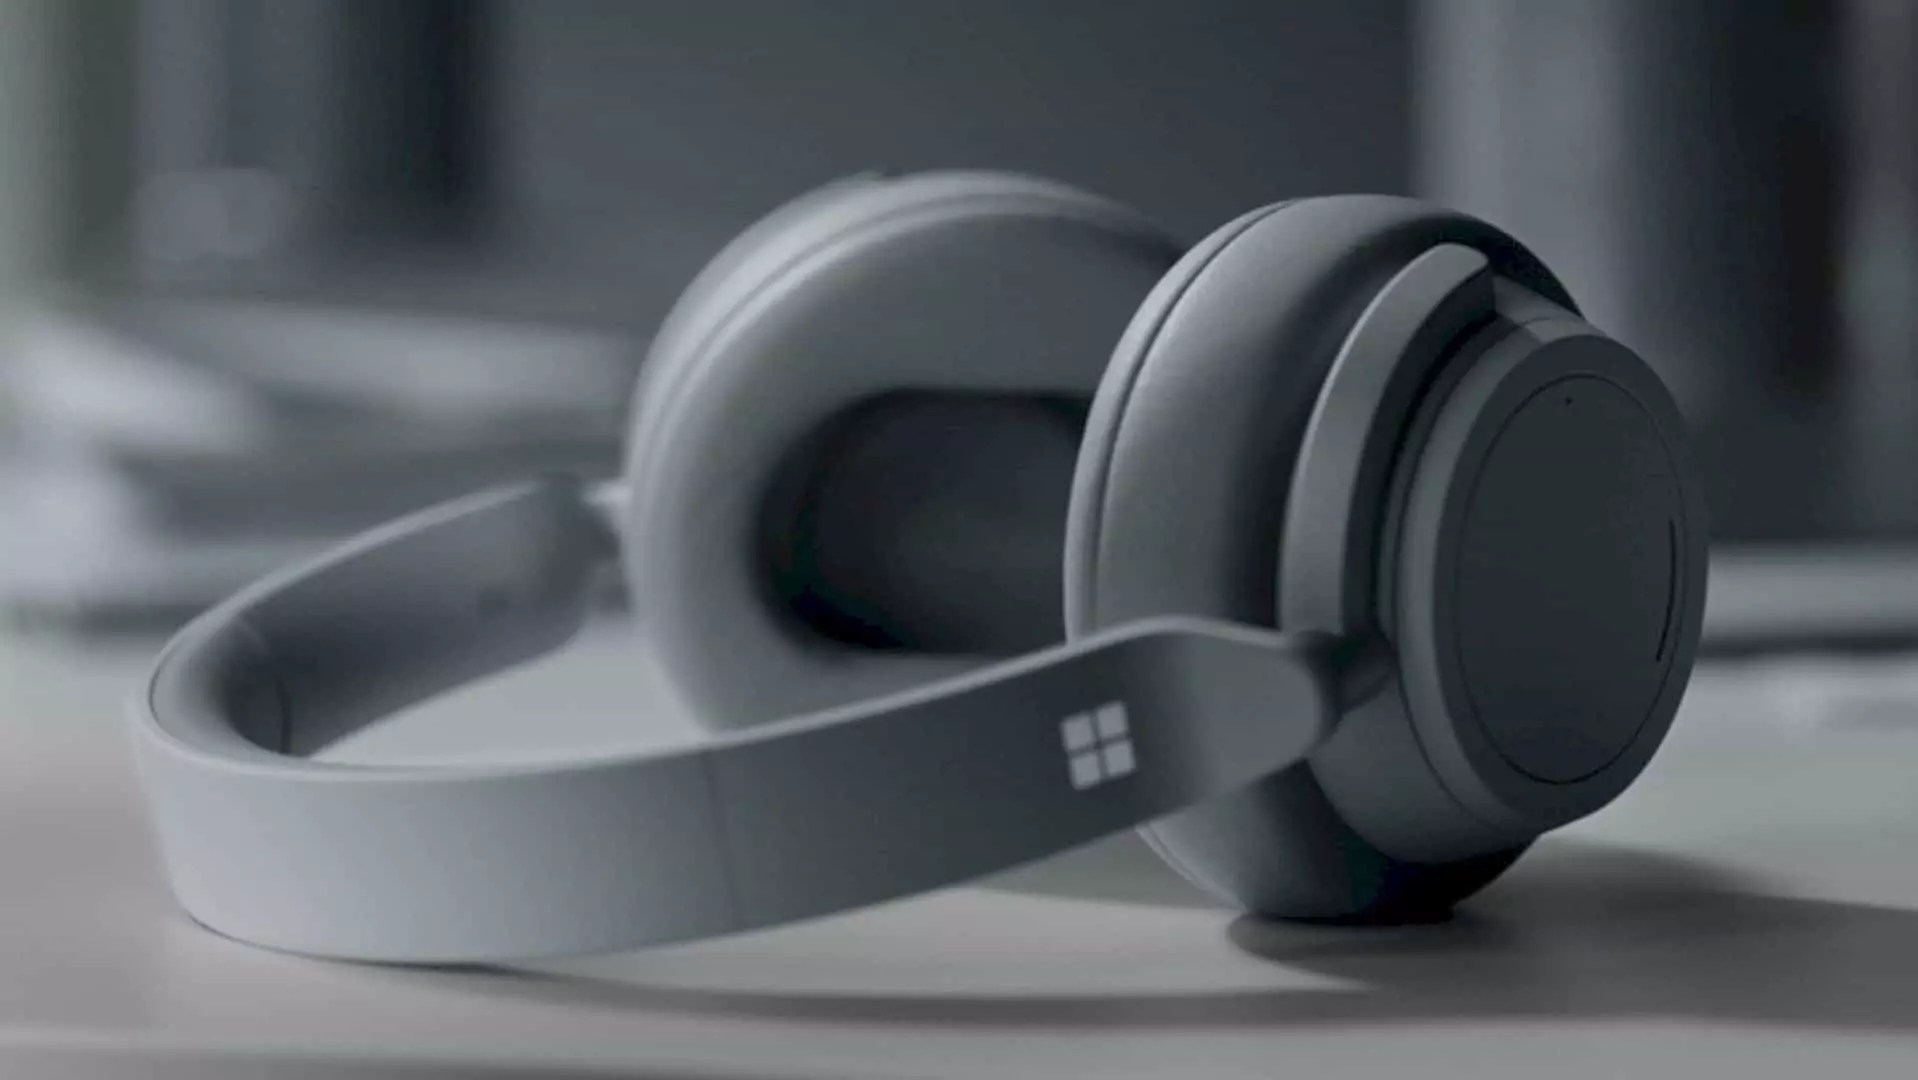 Surface Headphones: The Smarter Way to Listen